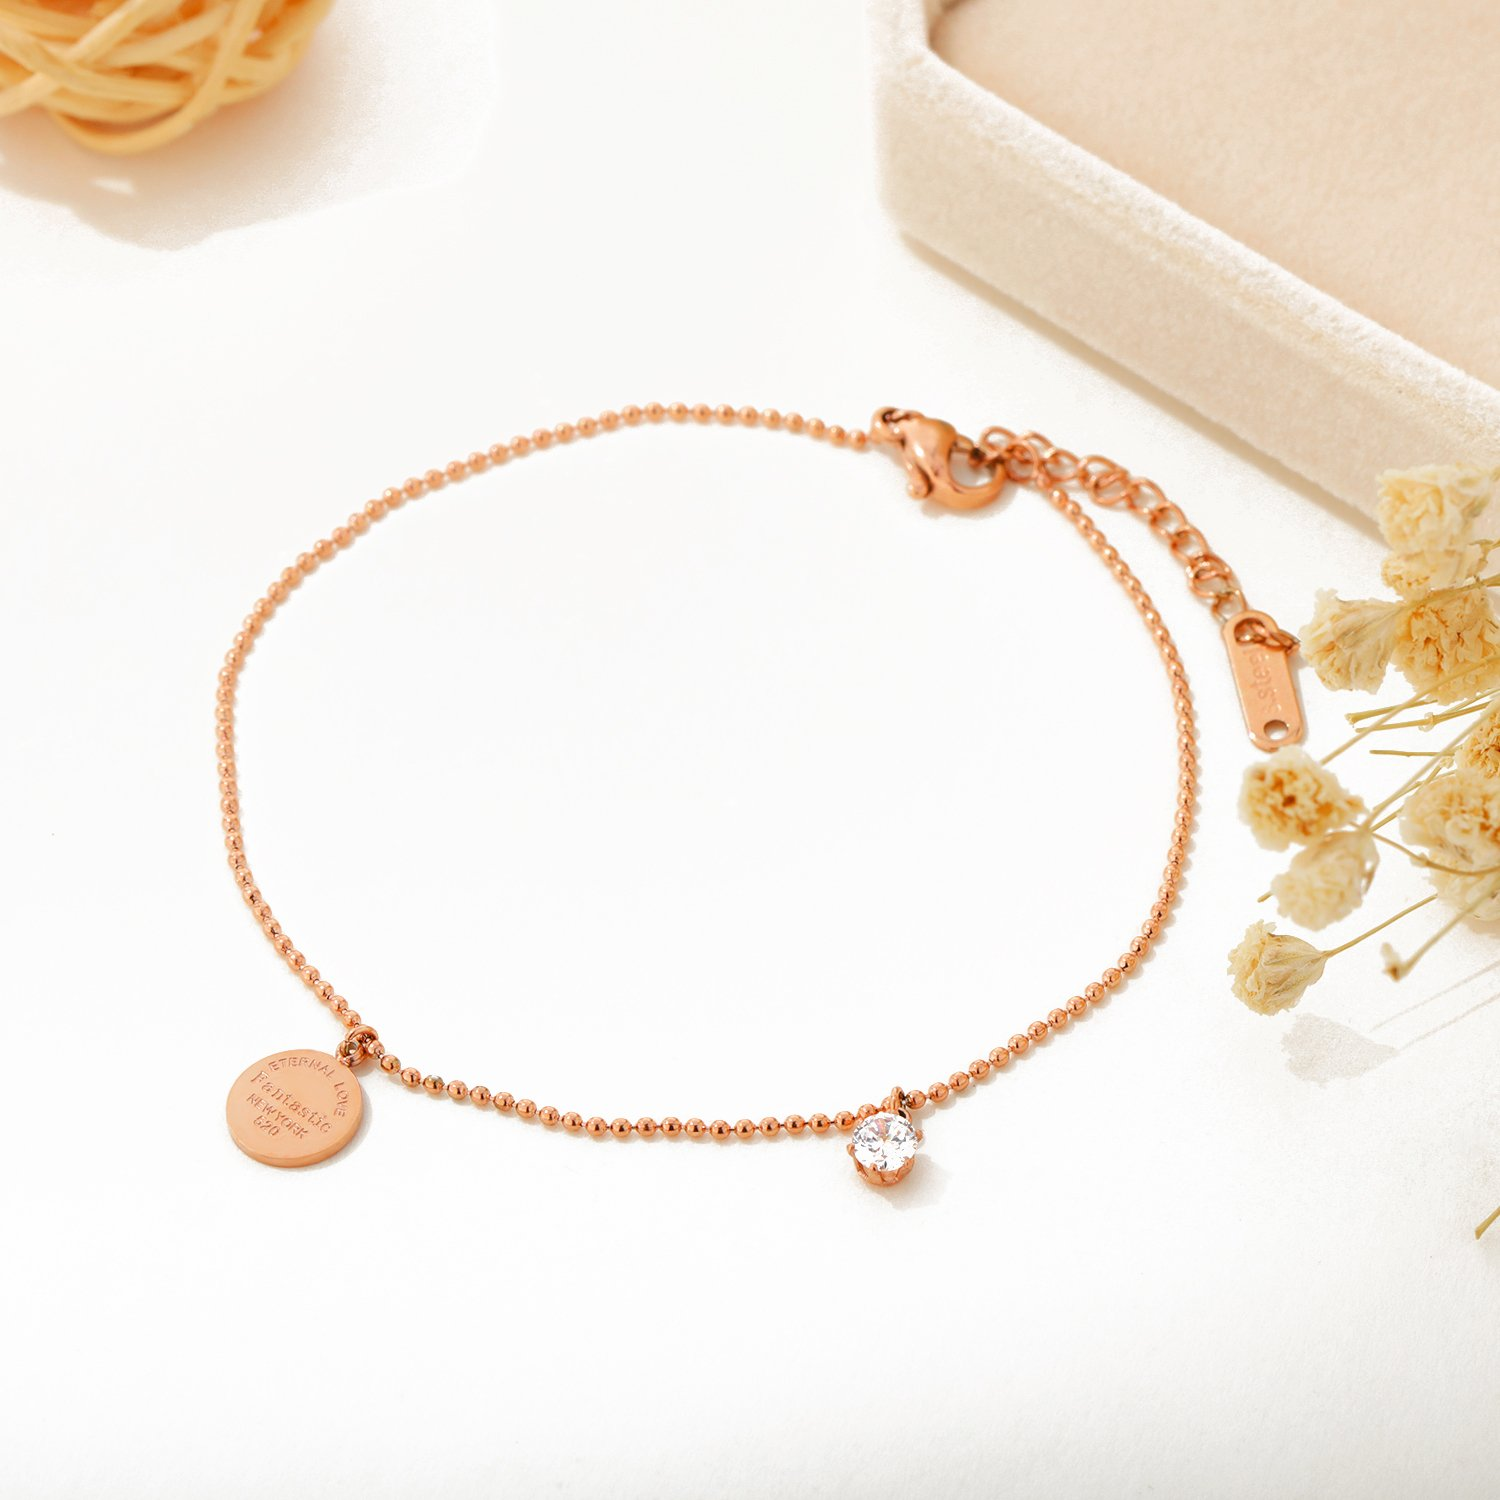 OPK Stainless Steel Rose Gold Women Anklet,Enternal Love Fantastic New York Link Chain Beach Foot Jewelry by OPK (Image #6)